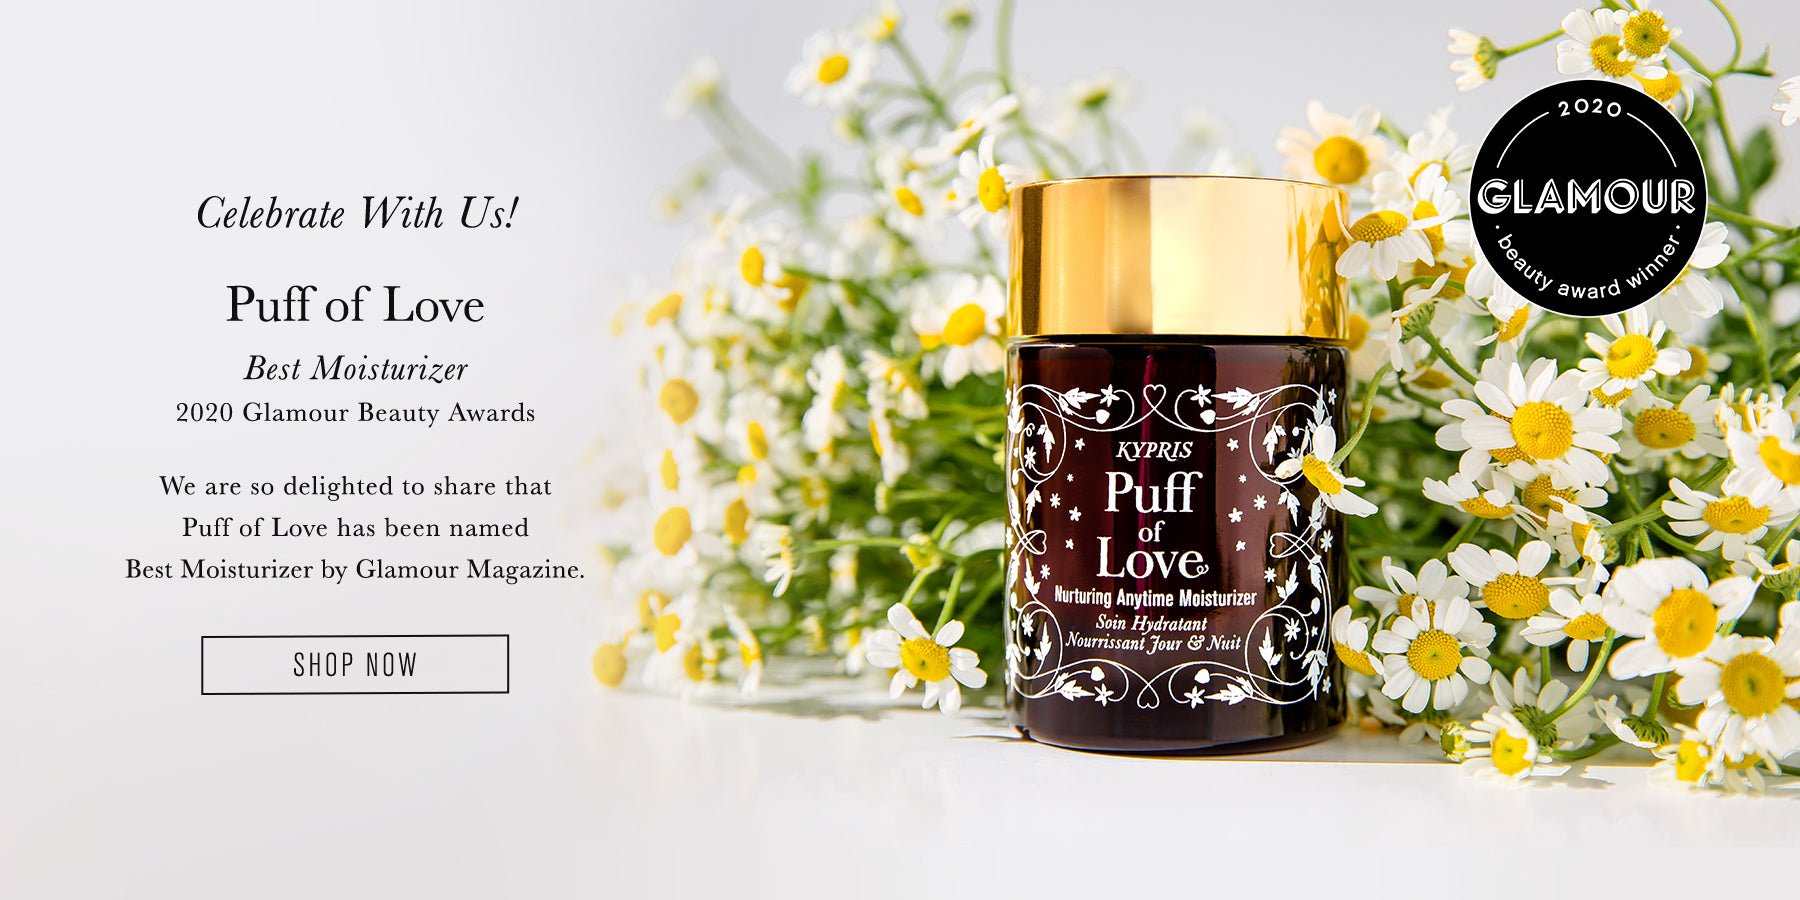 Glamour - Best Moistuirizer of 2020: Puff of Love